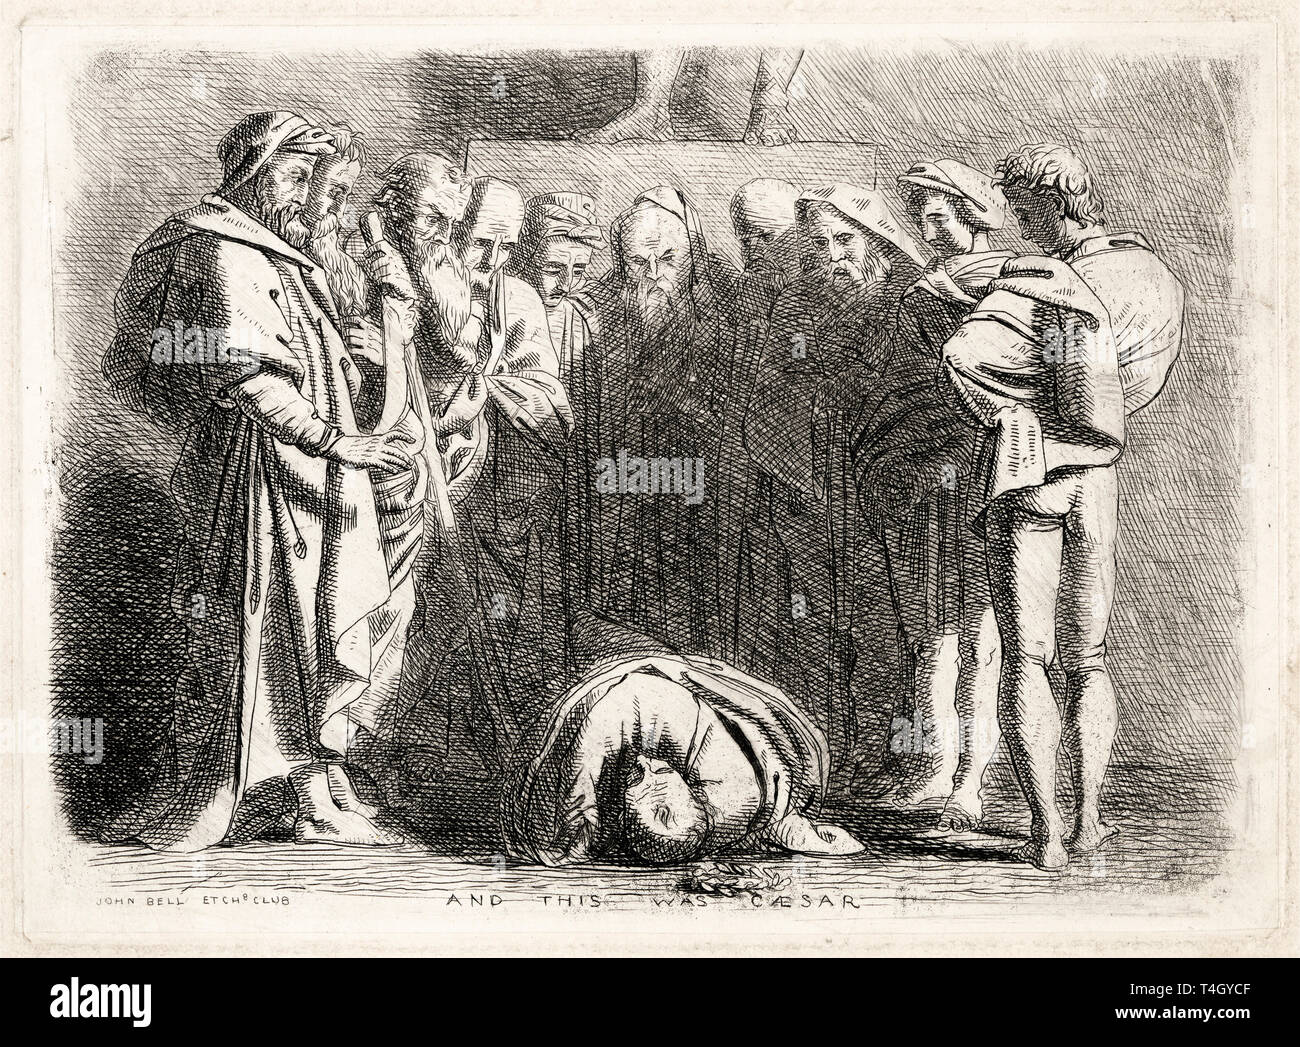 John Bell, And This Was Caesar, etching showing the moments after Julius Caesar's murder, c. 1838 Stock Photo